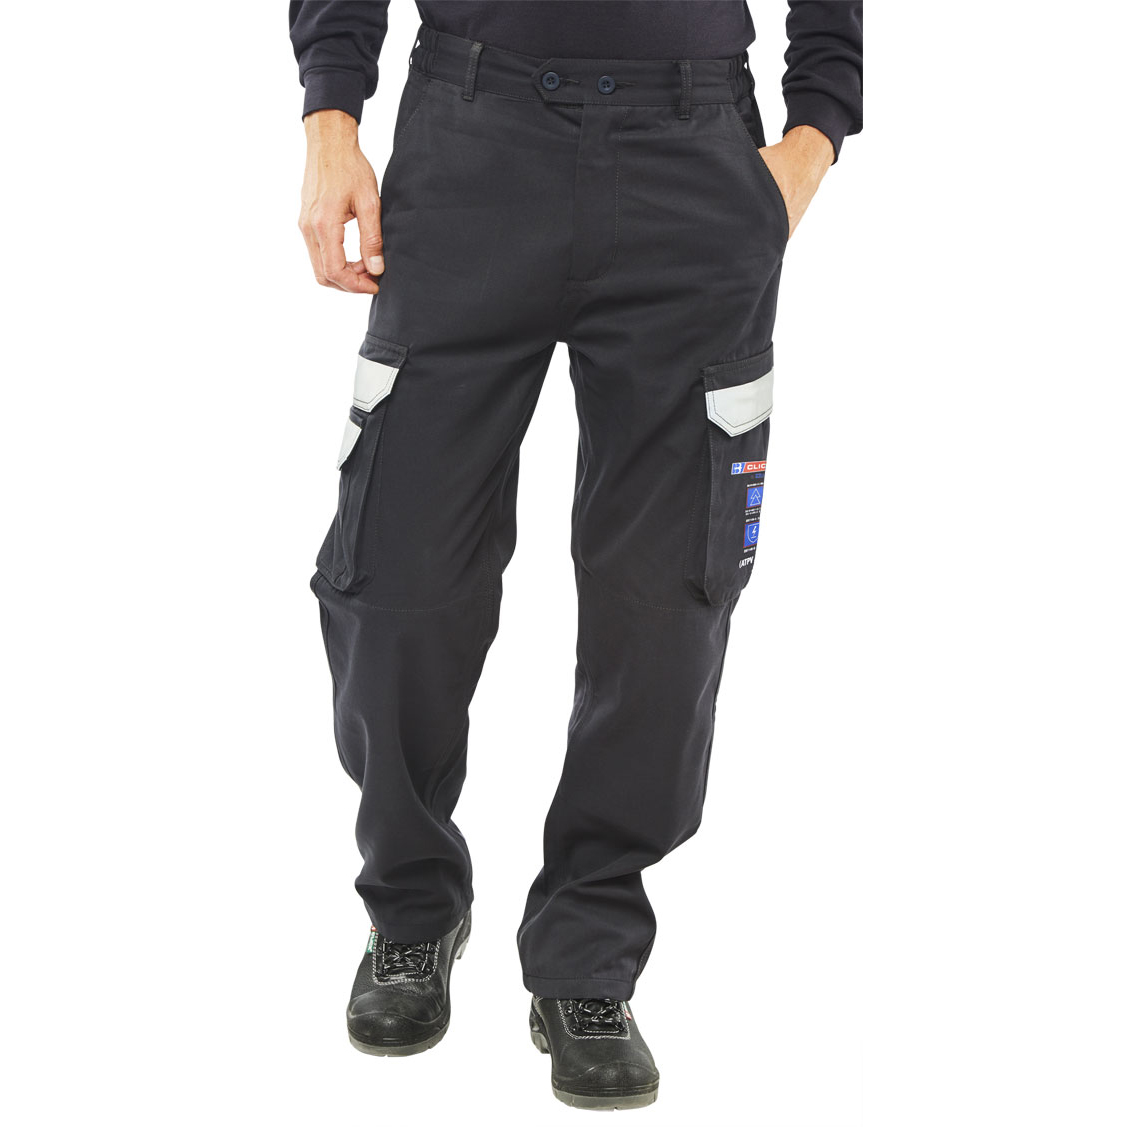 Fire Retardant / Flame Resistant Click Arc Flash Trousers Fire Retardant Navy Blue 48 Ref CARC4N48 *Up to 3 Day Leadtime*